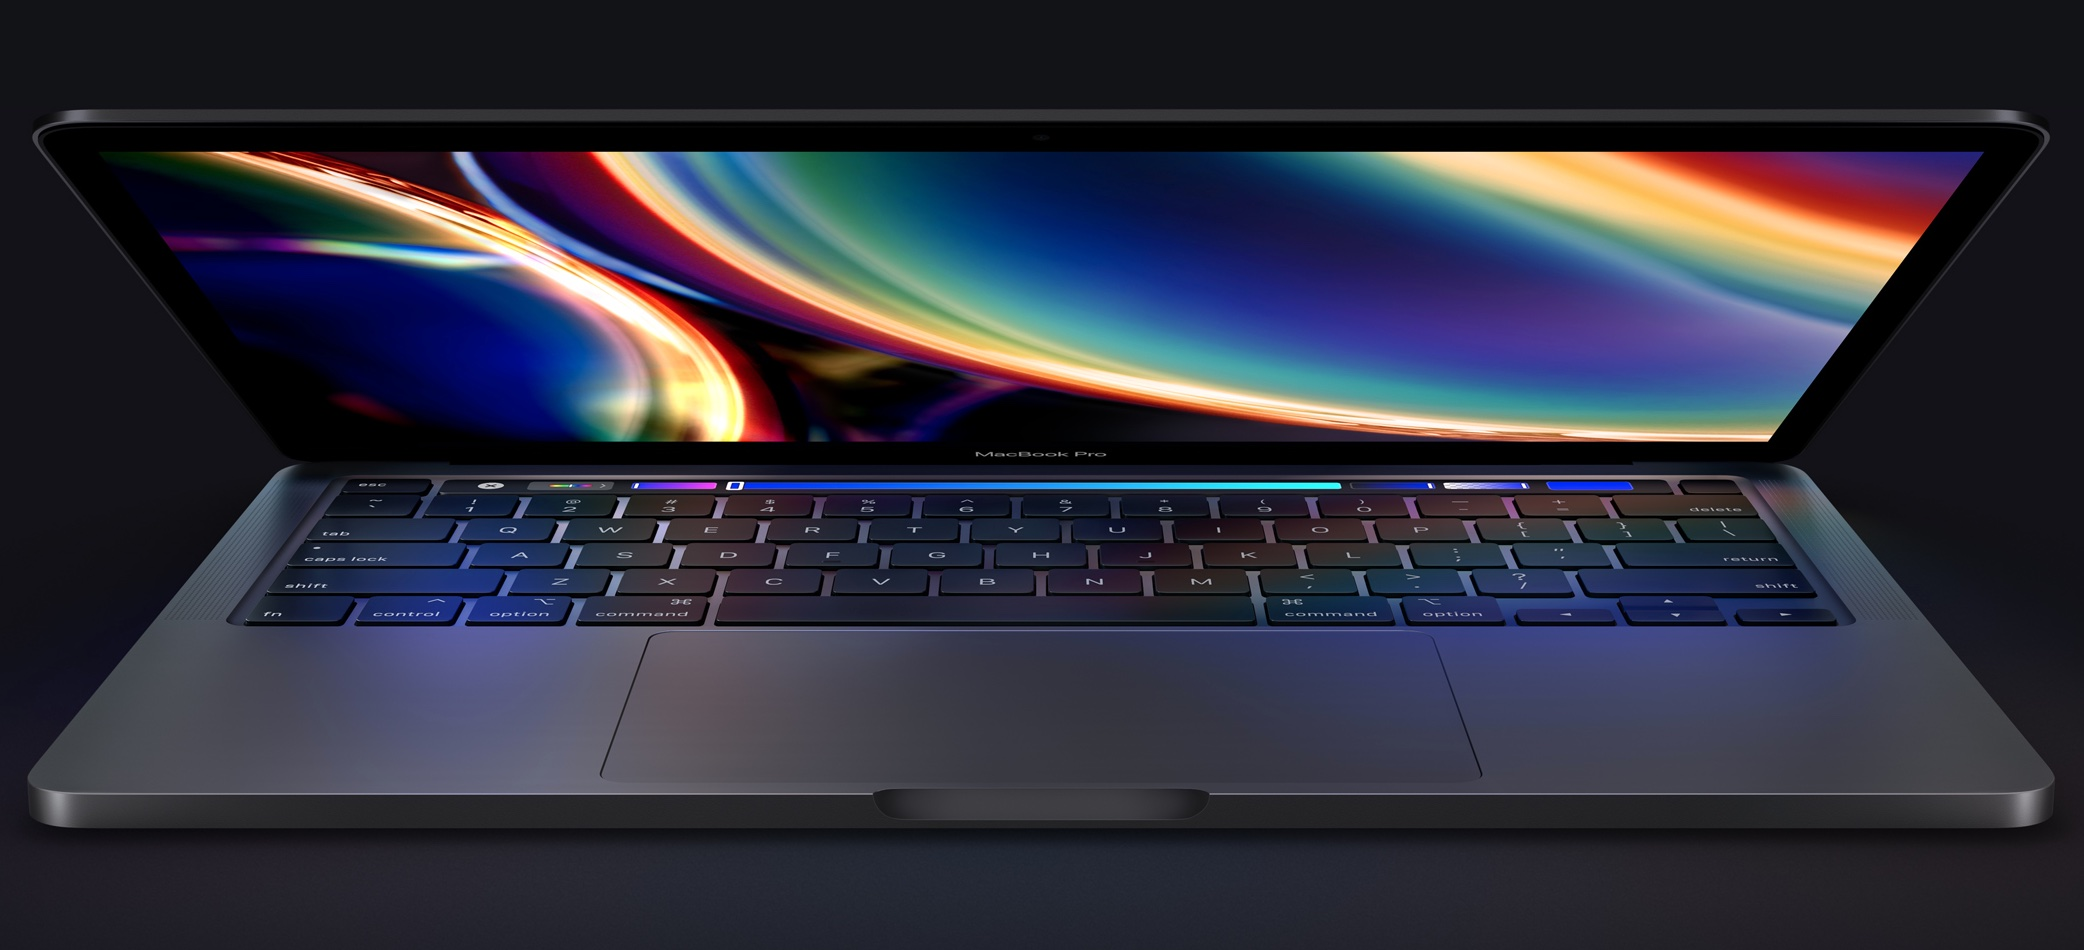 Ming-Chi Kuo: All new MacBook Pros will come with Apple Silicon-CnTechPost